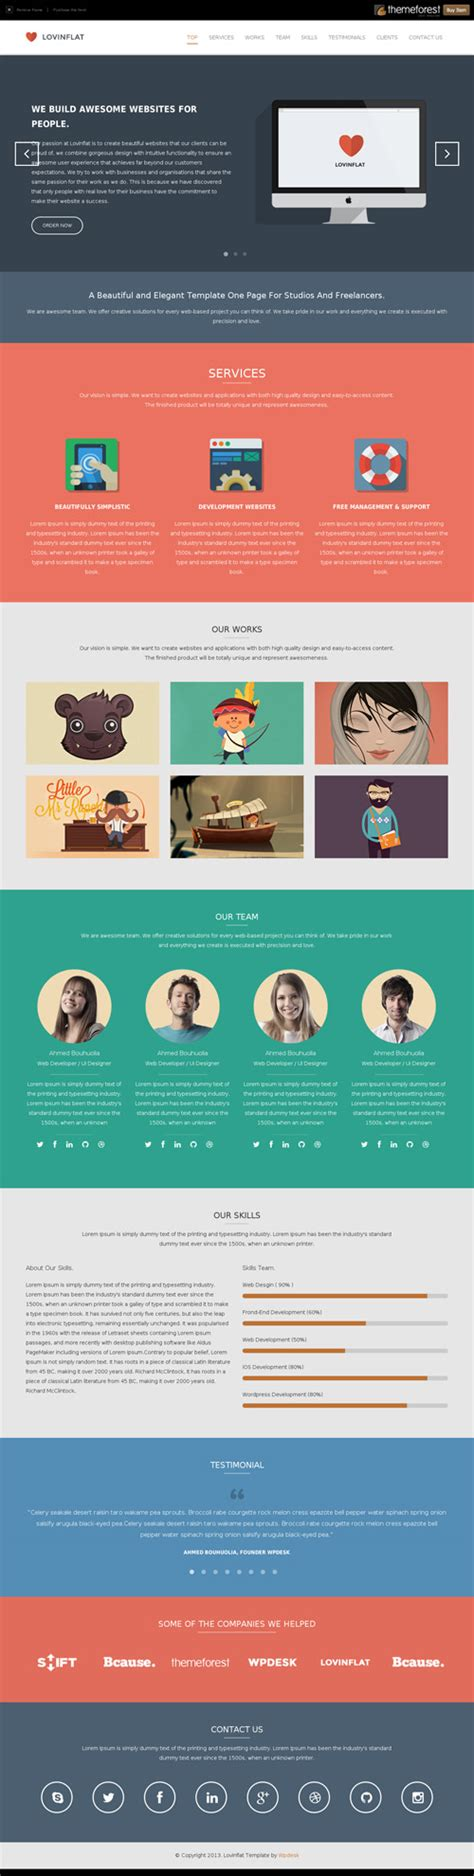 Responsive One Page Templates Permium Collection Design Graphic Design Junction Single Page Website Template Free